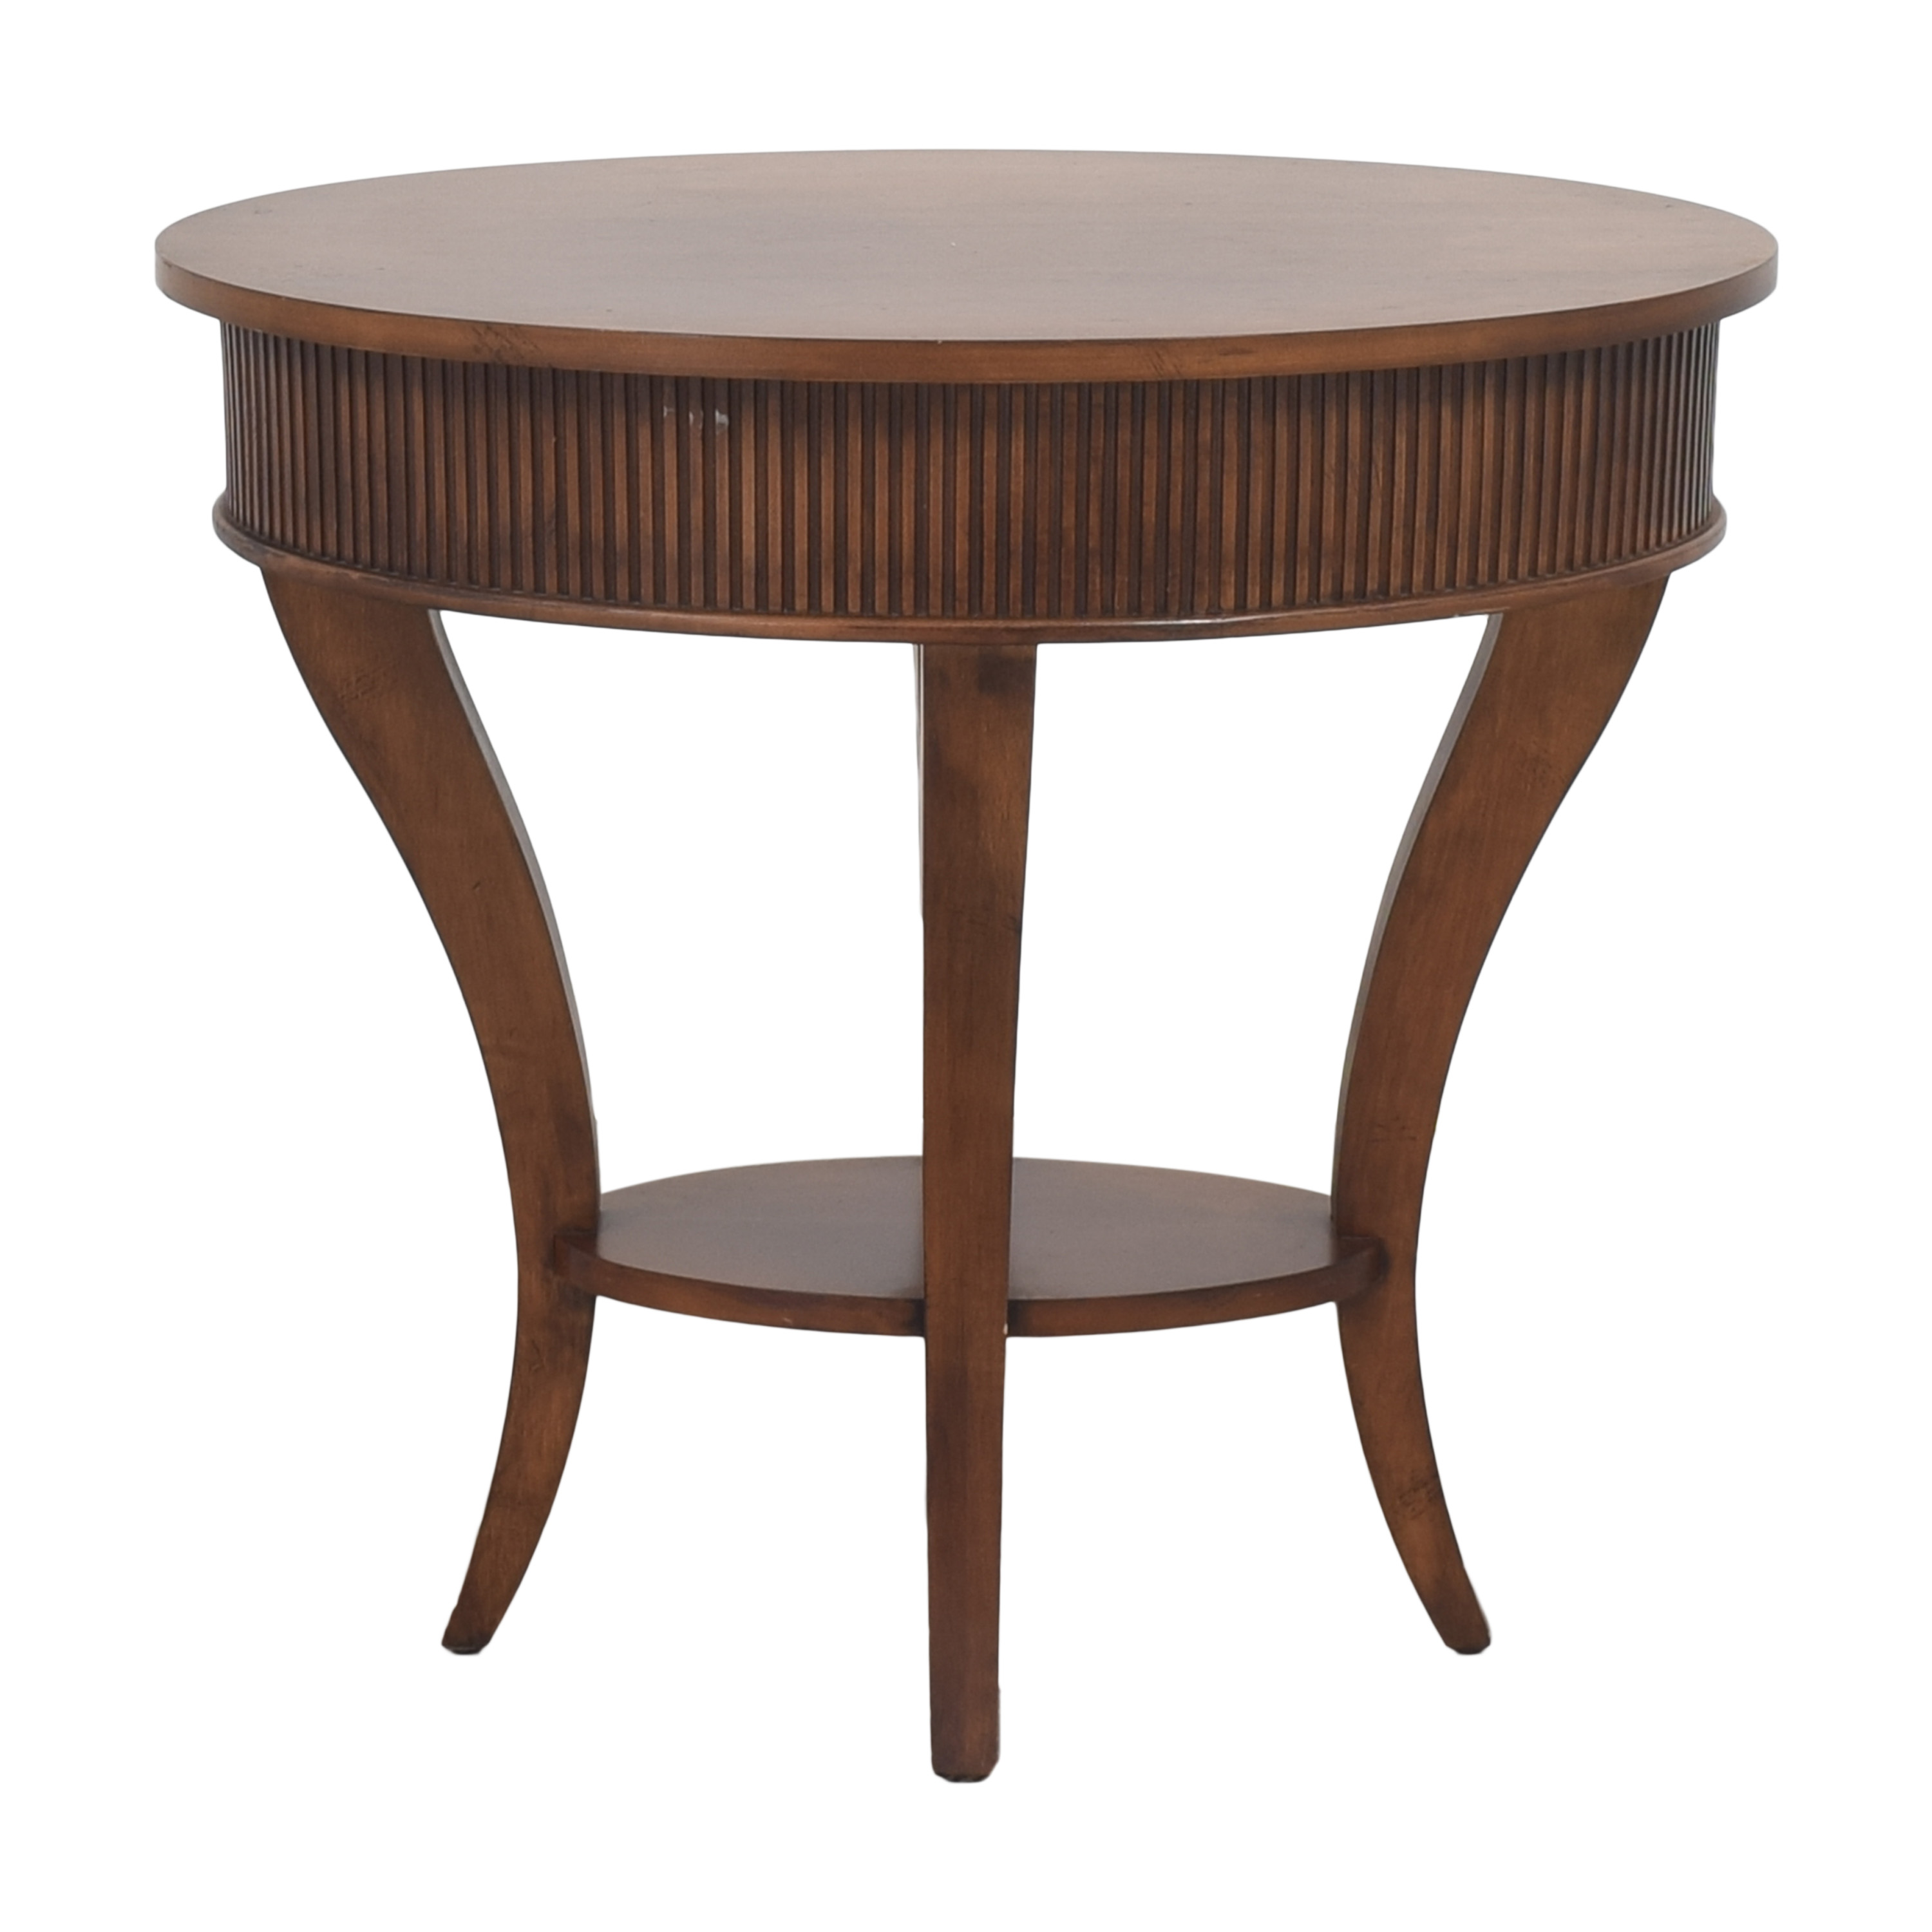 Lane Furniture Lane Furniture Oval End Table nj